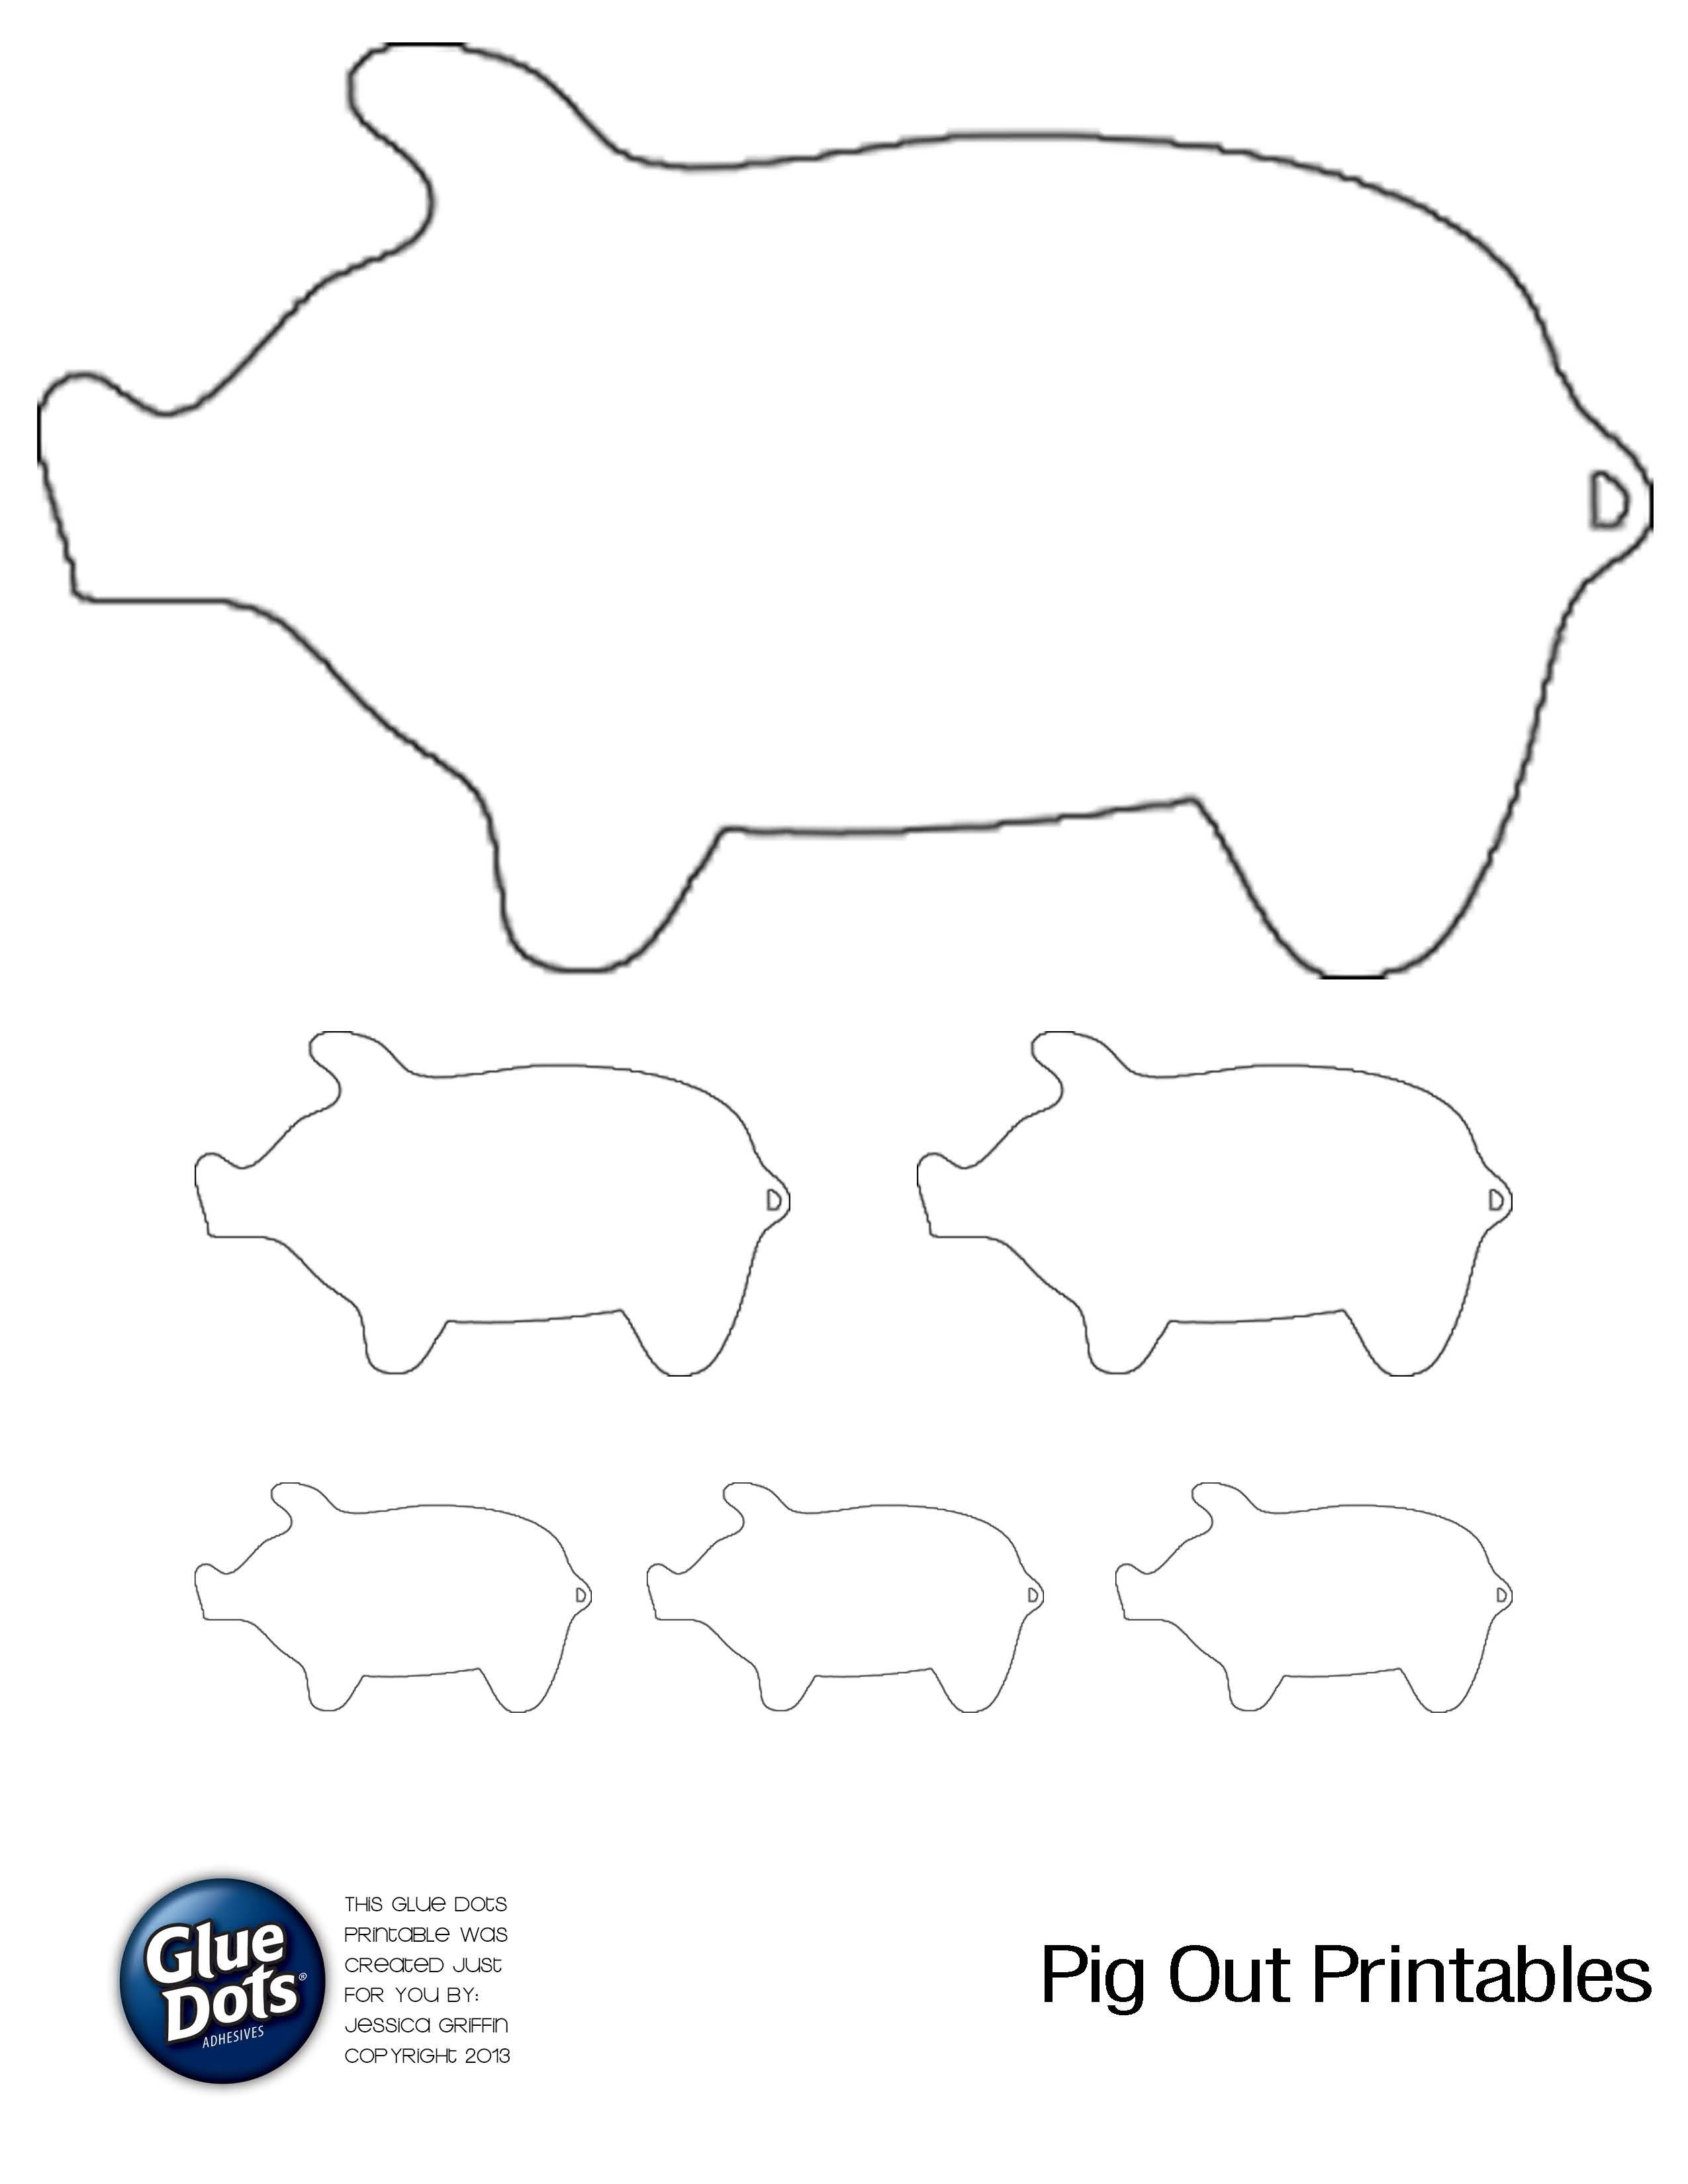 Free Pig Shape Printables for #GlueDots